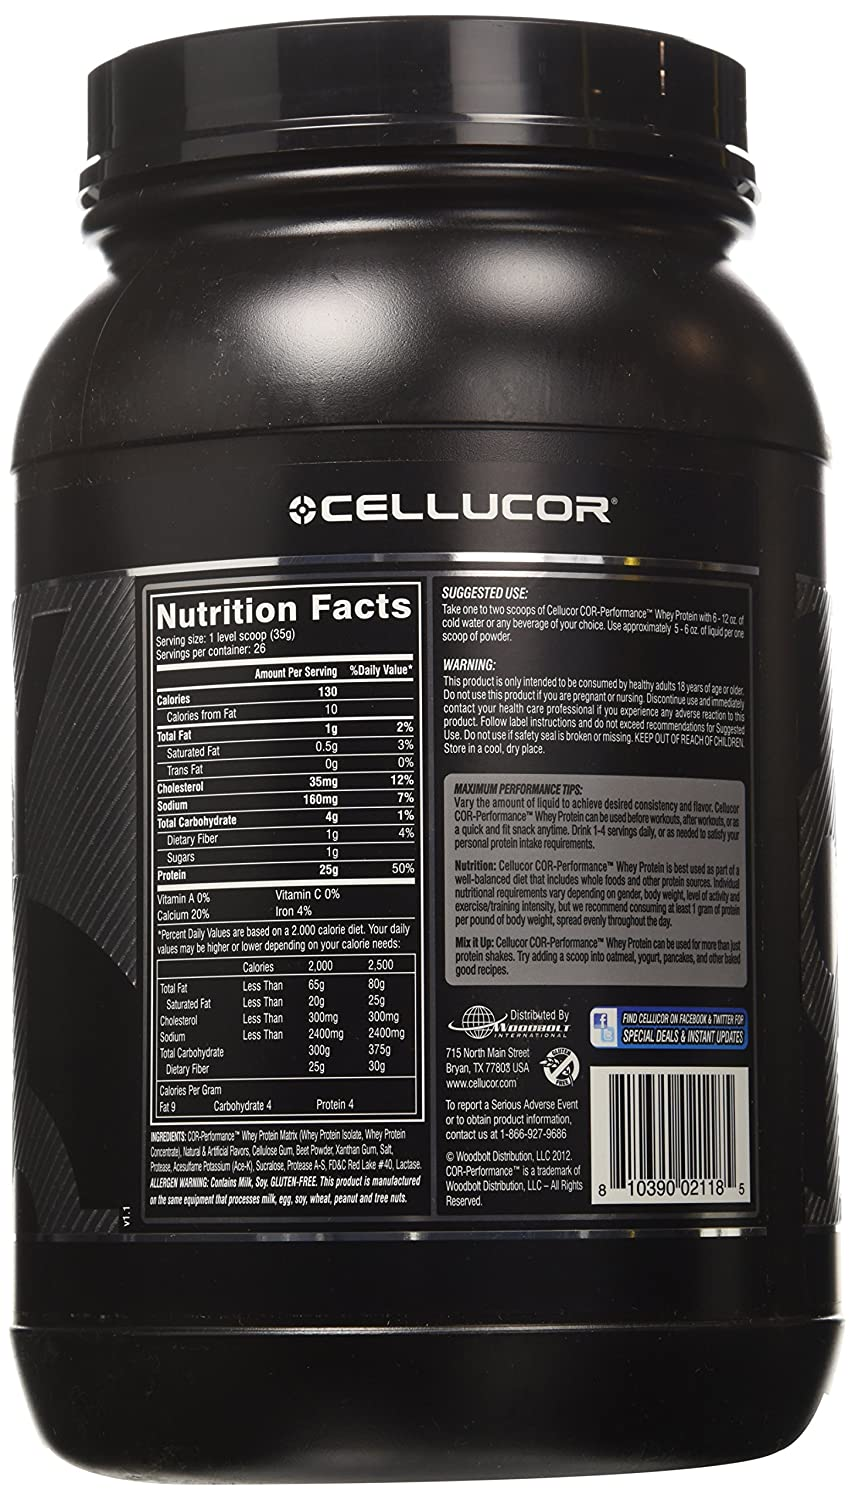 Cellucor Cor-Performance Whey Fast Digesting 100% Whey Protein 26 Servings, Red Velvet, 2 Pound: Amazon.es: Salud y cuidado personal